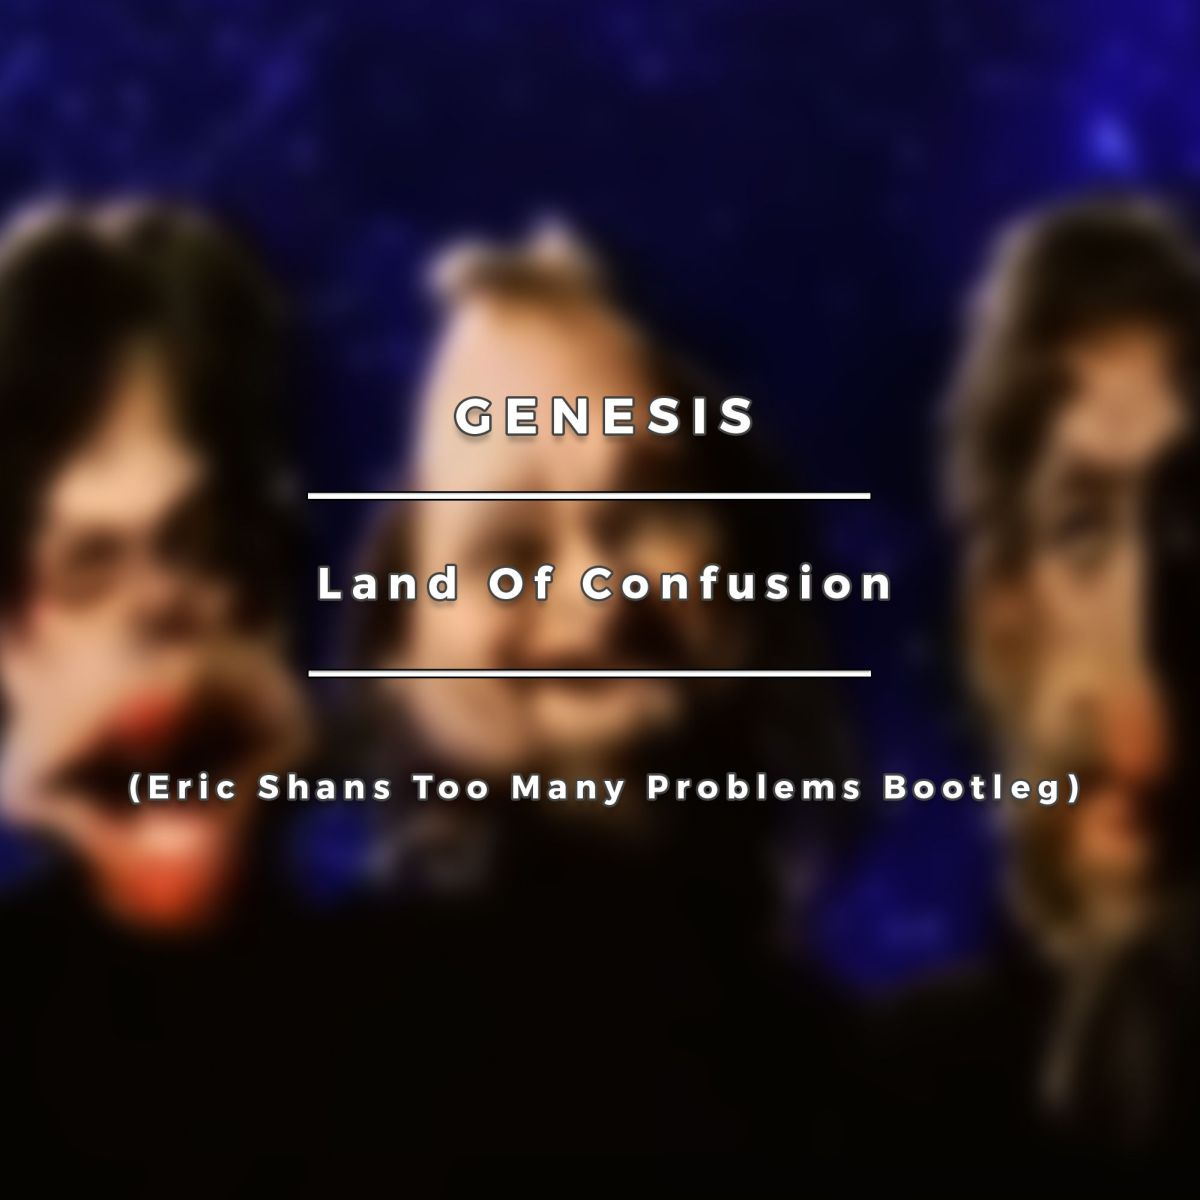 Genesis - Land Of Confusion (Eric Shans Too Many Problems Bootleg) [House Music]